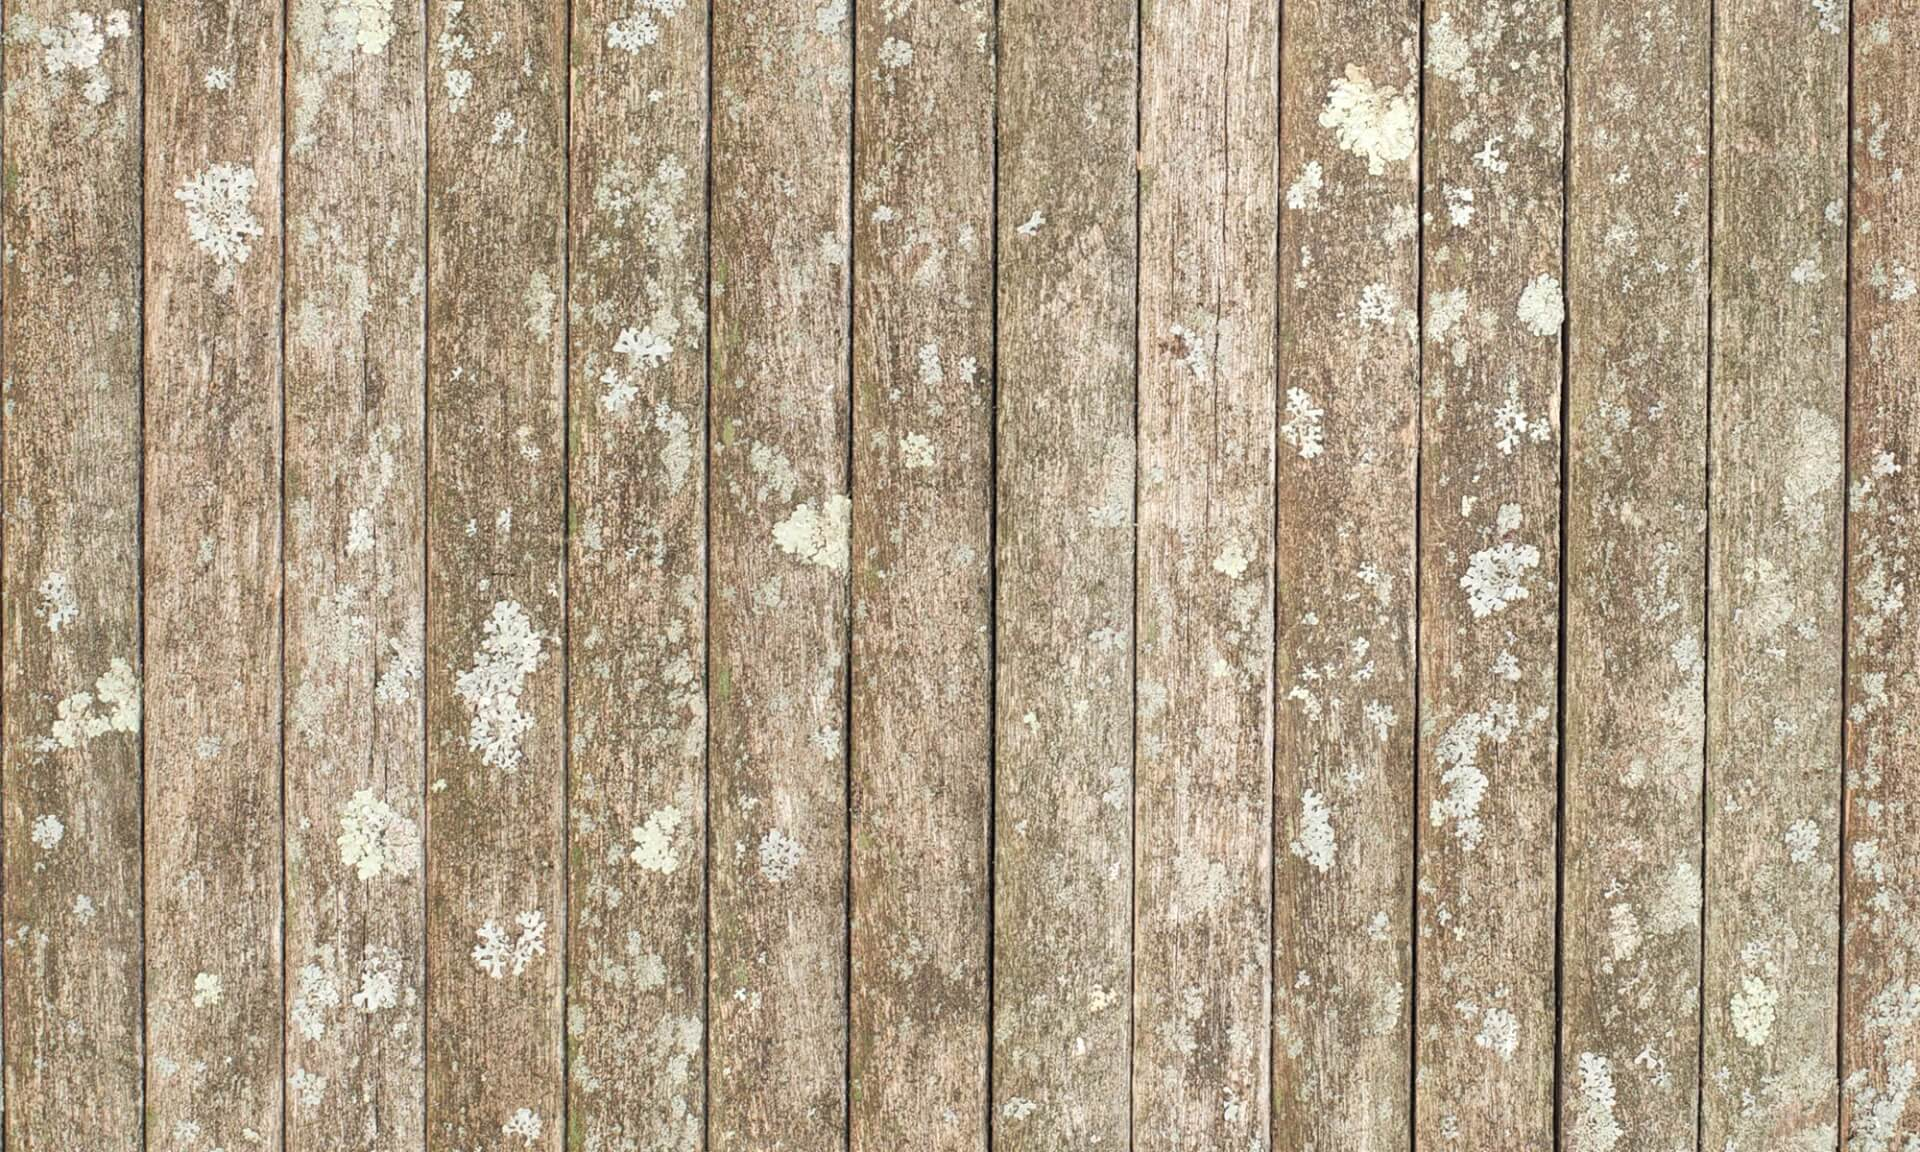 Rustic (Slats or teak and lichen)